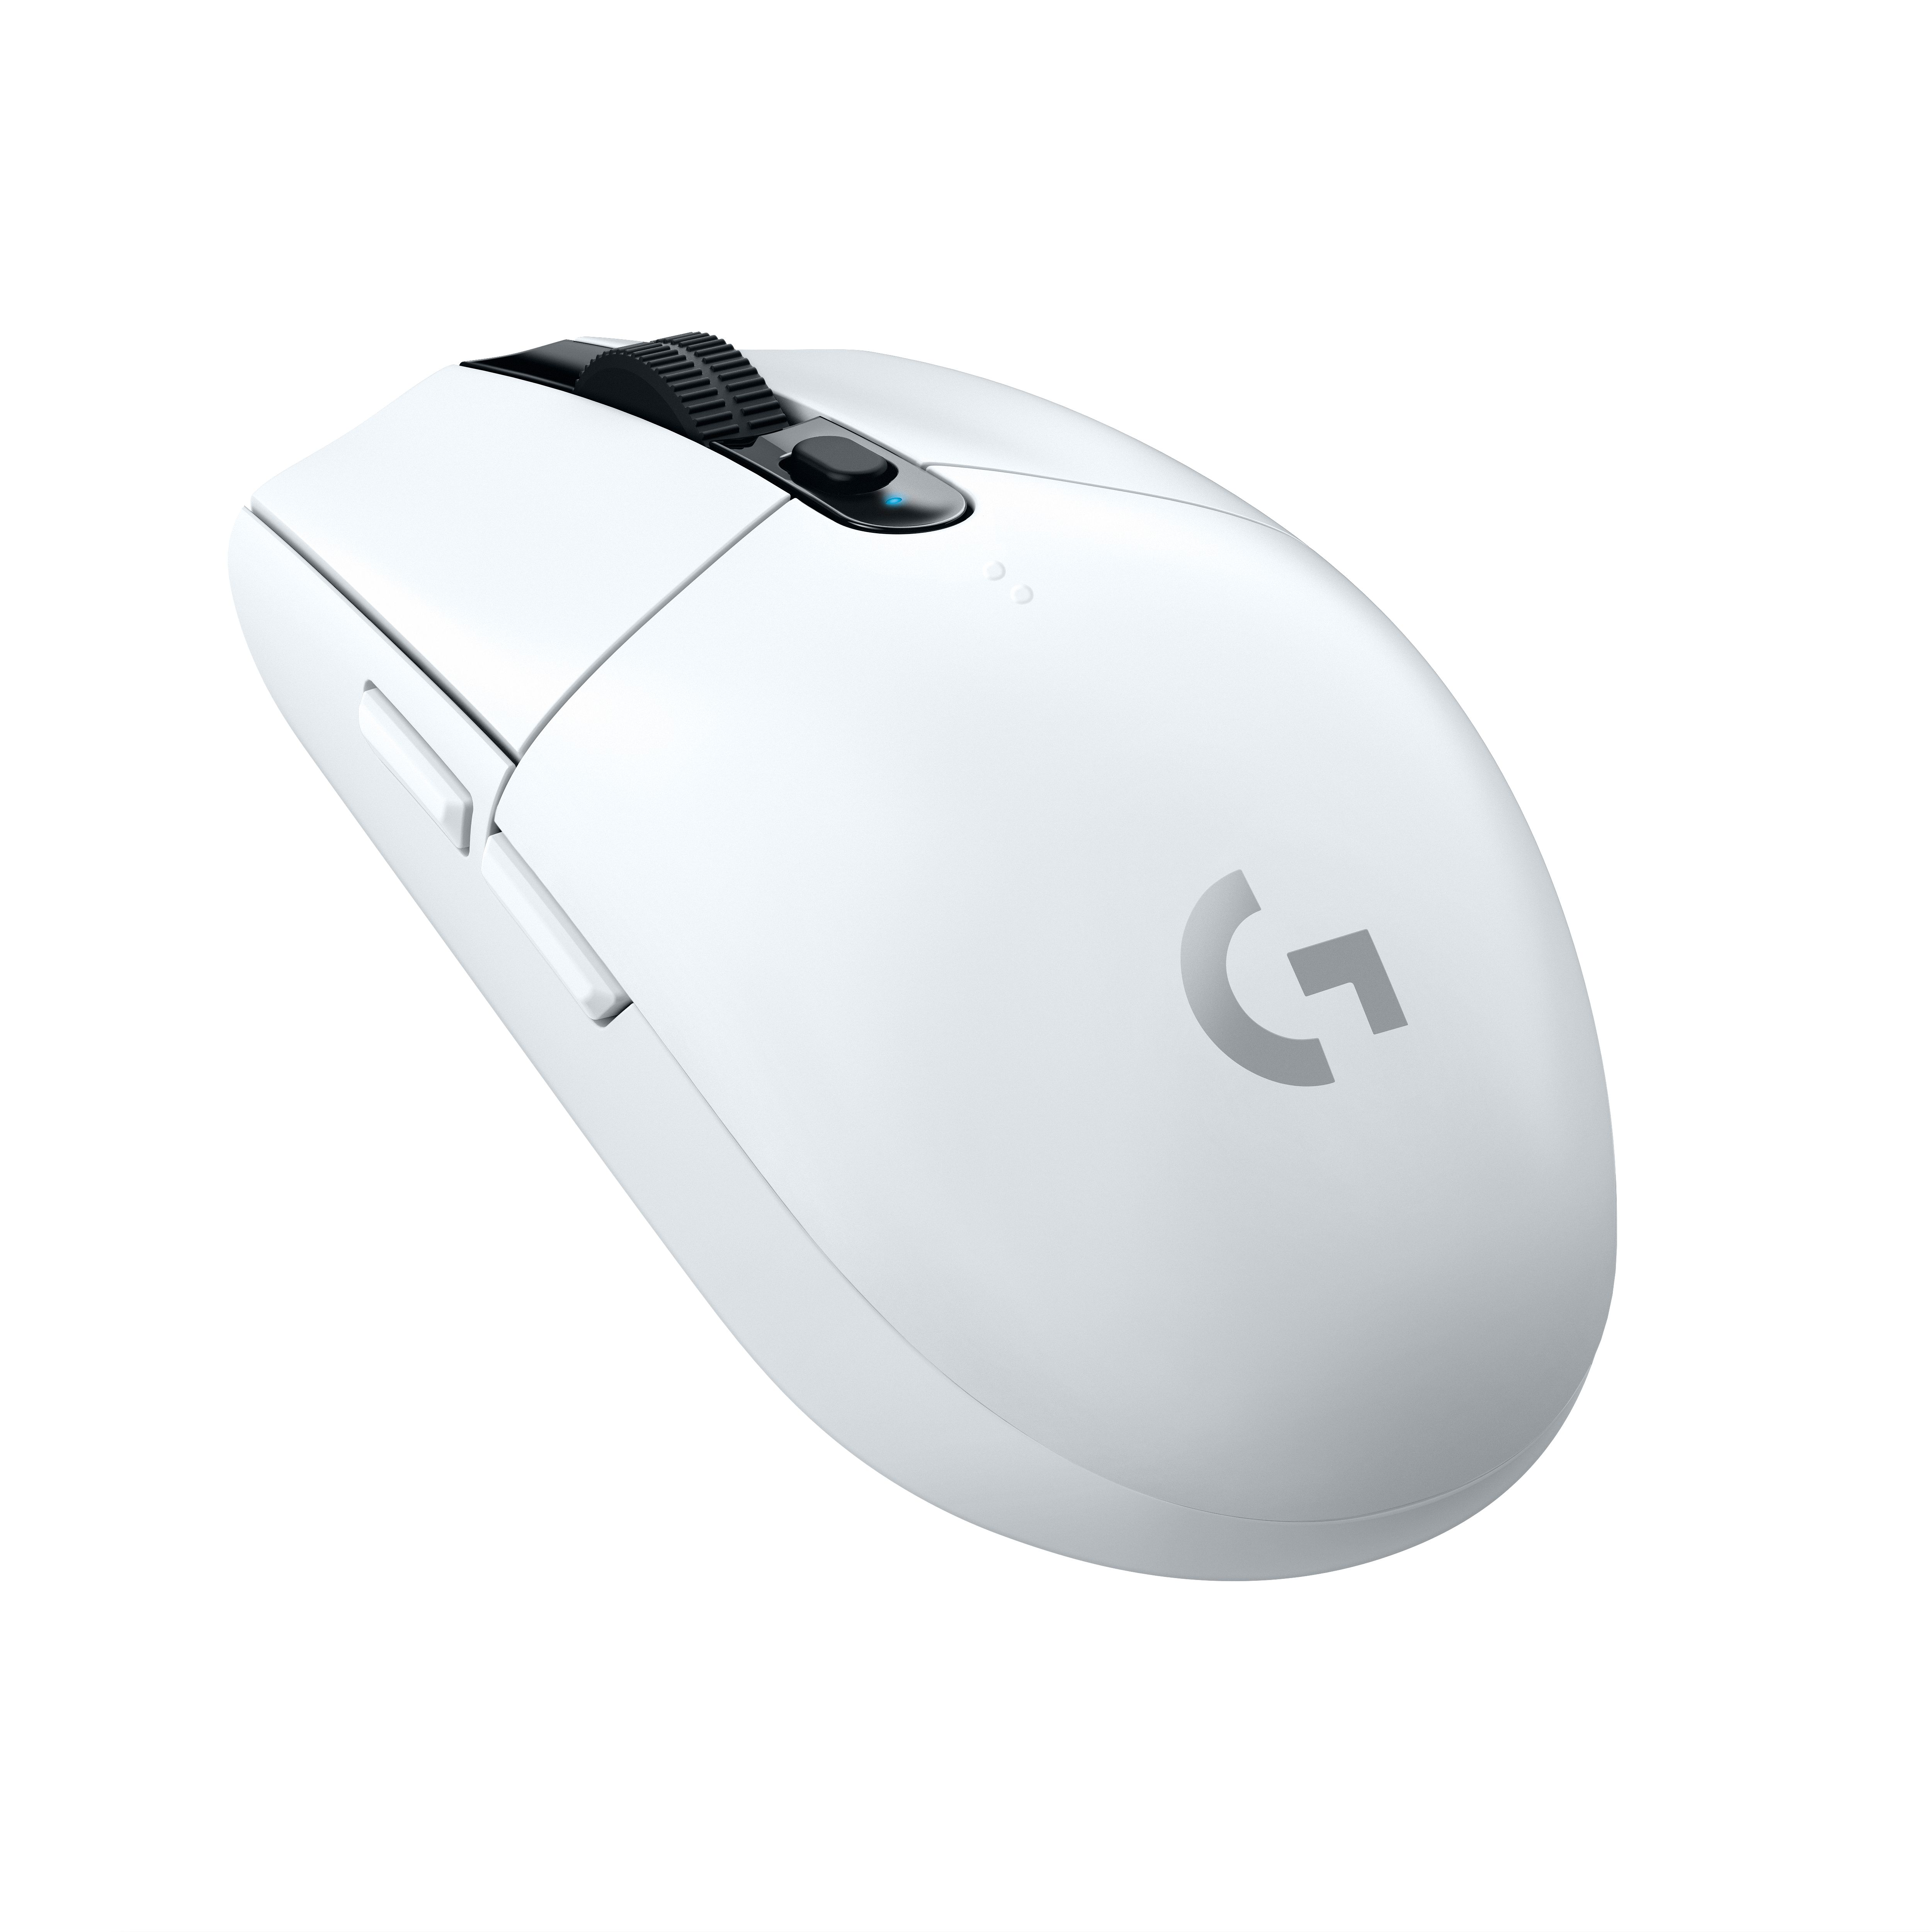 Logitech - G305 Wireless Gaming Mouse White